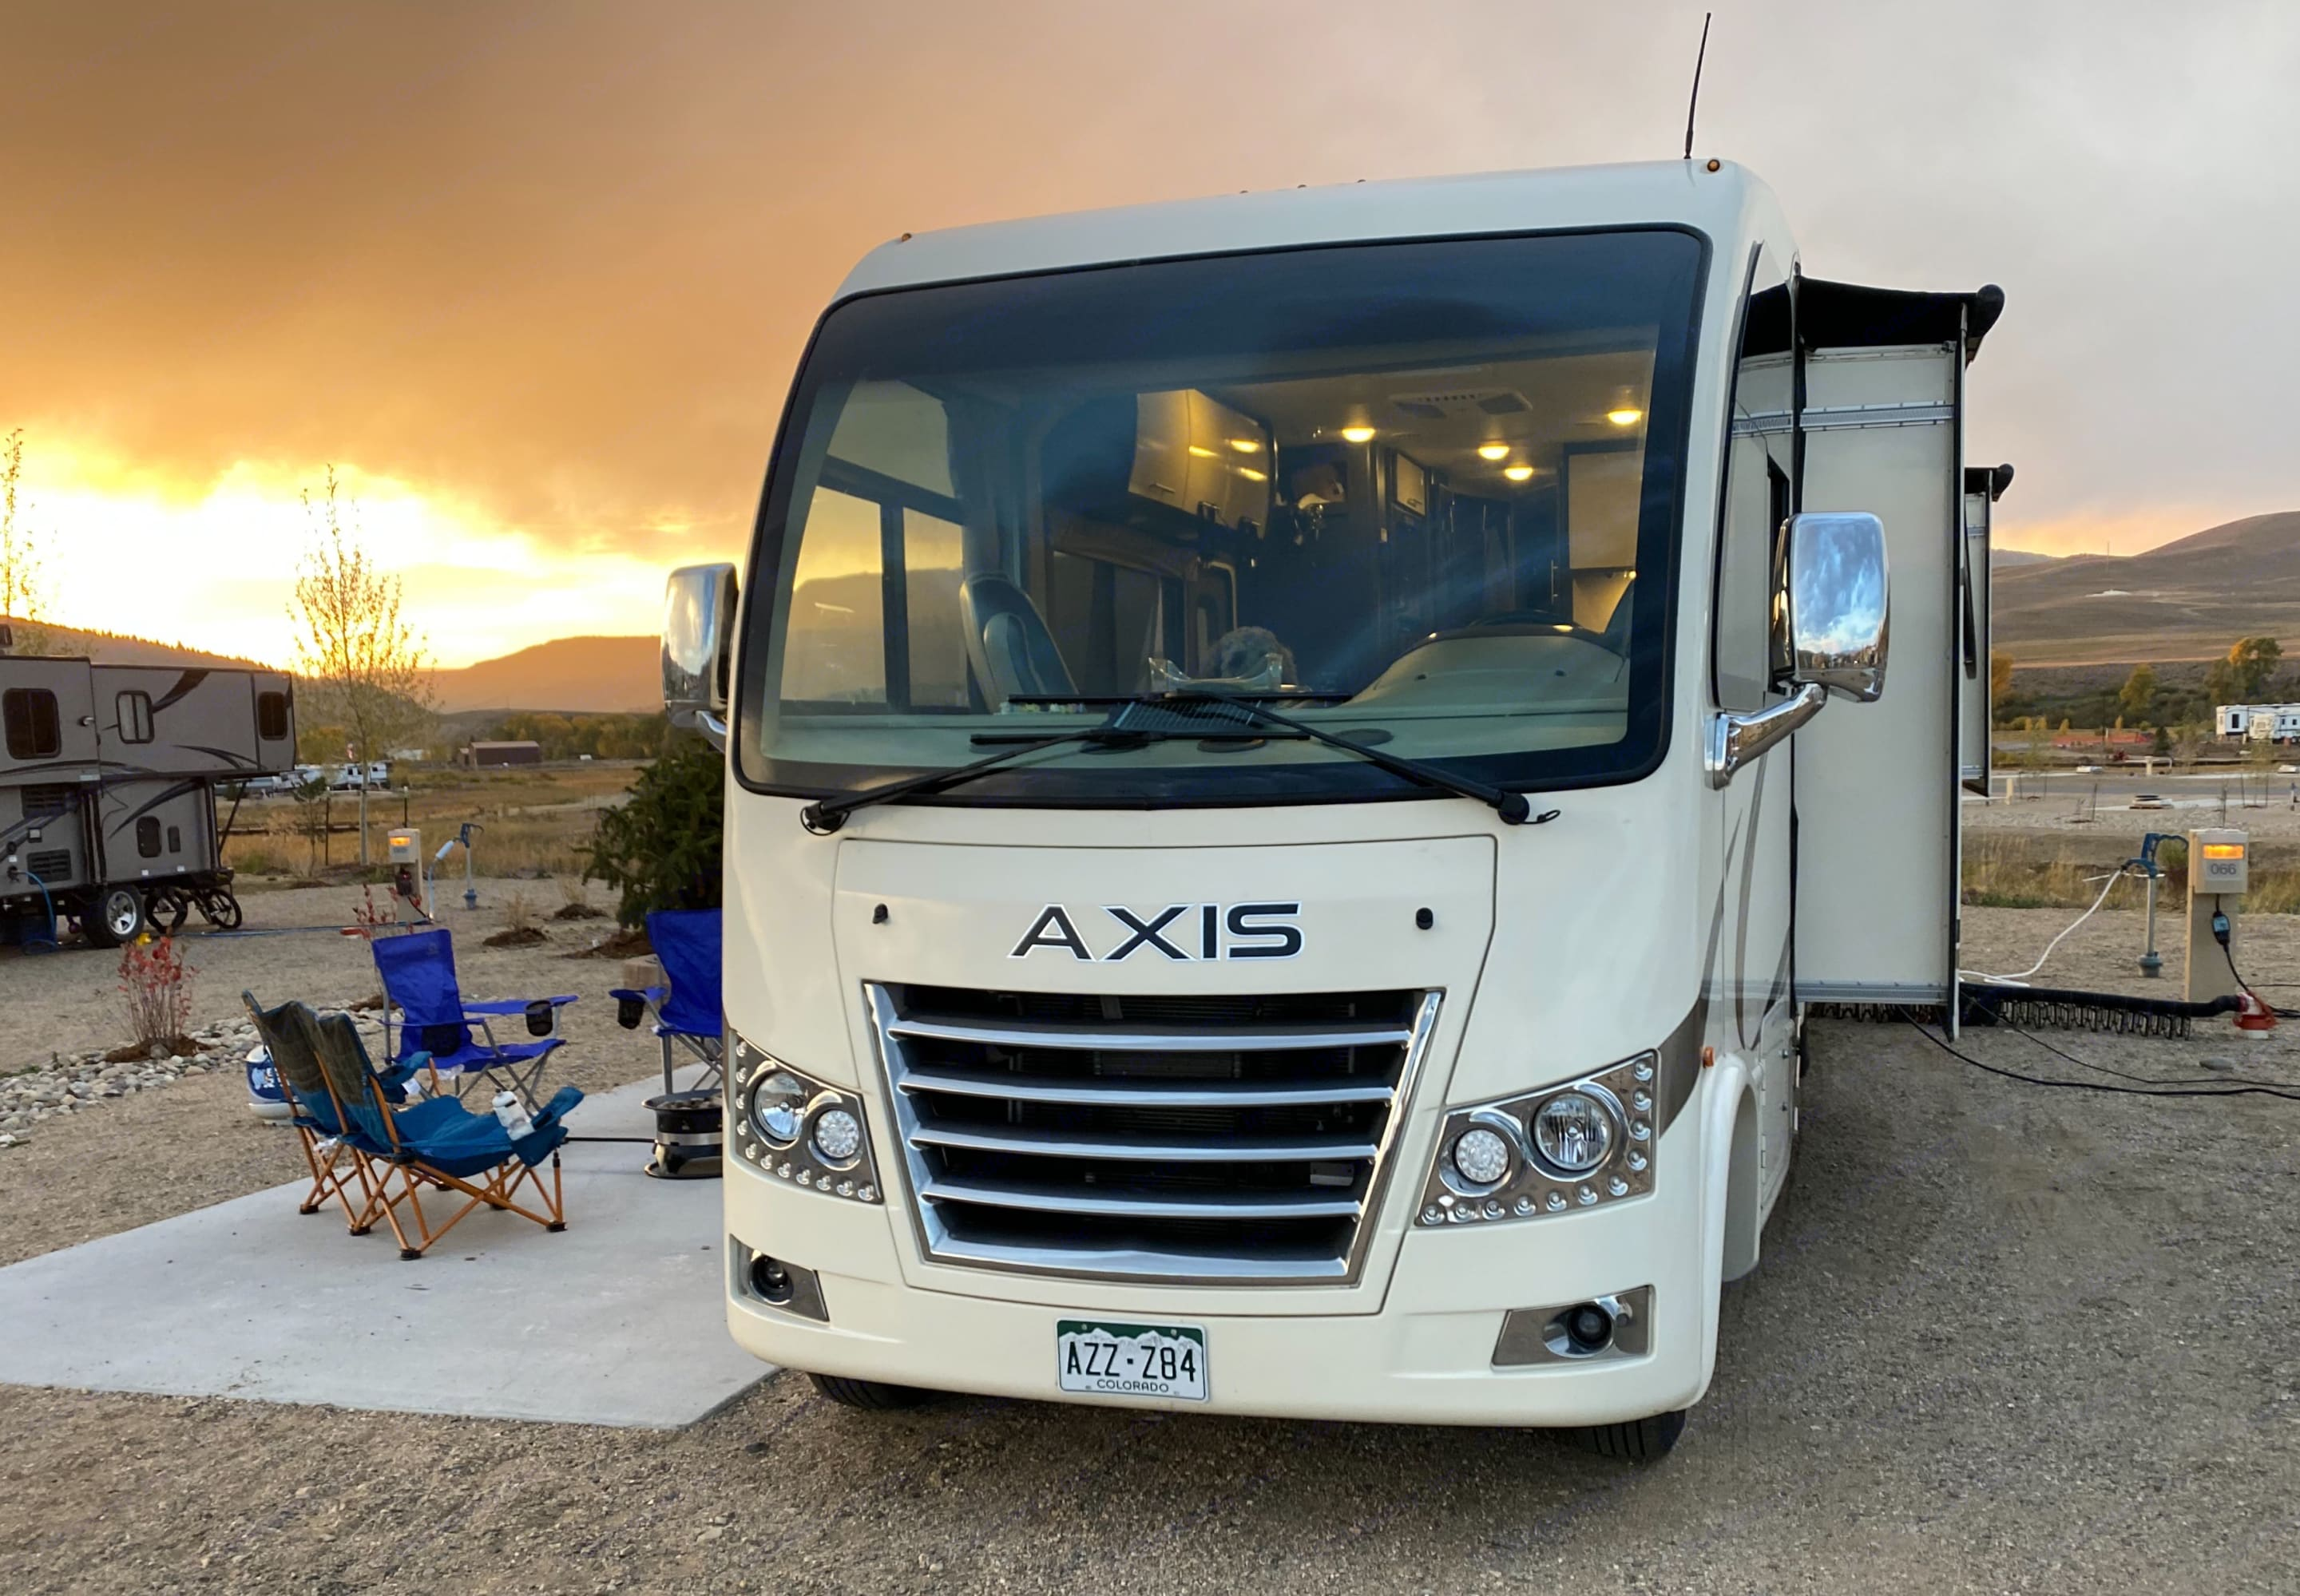 Class C size in a Class A look! Electric awning use included!. Thor Motor Coach Axis 2019